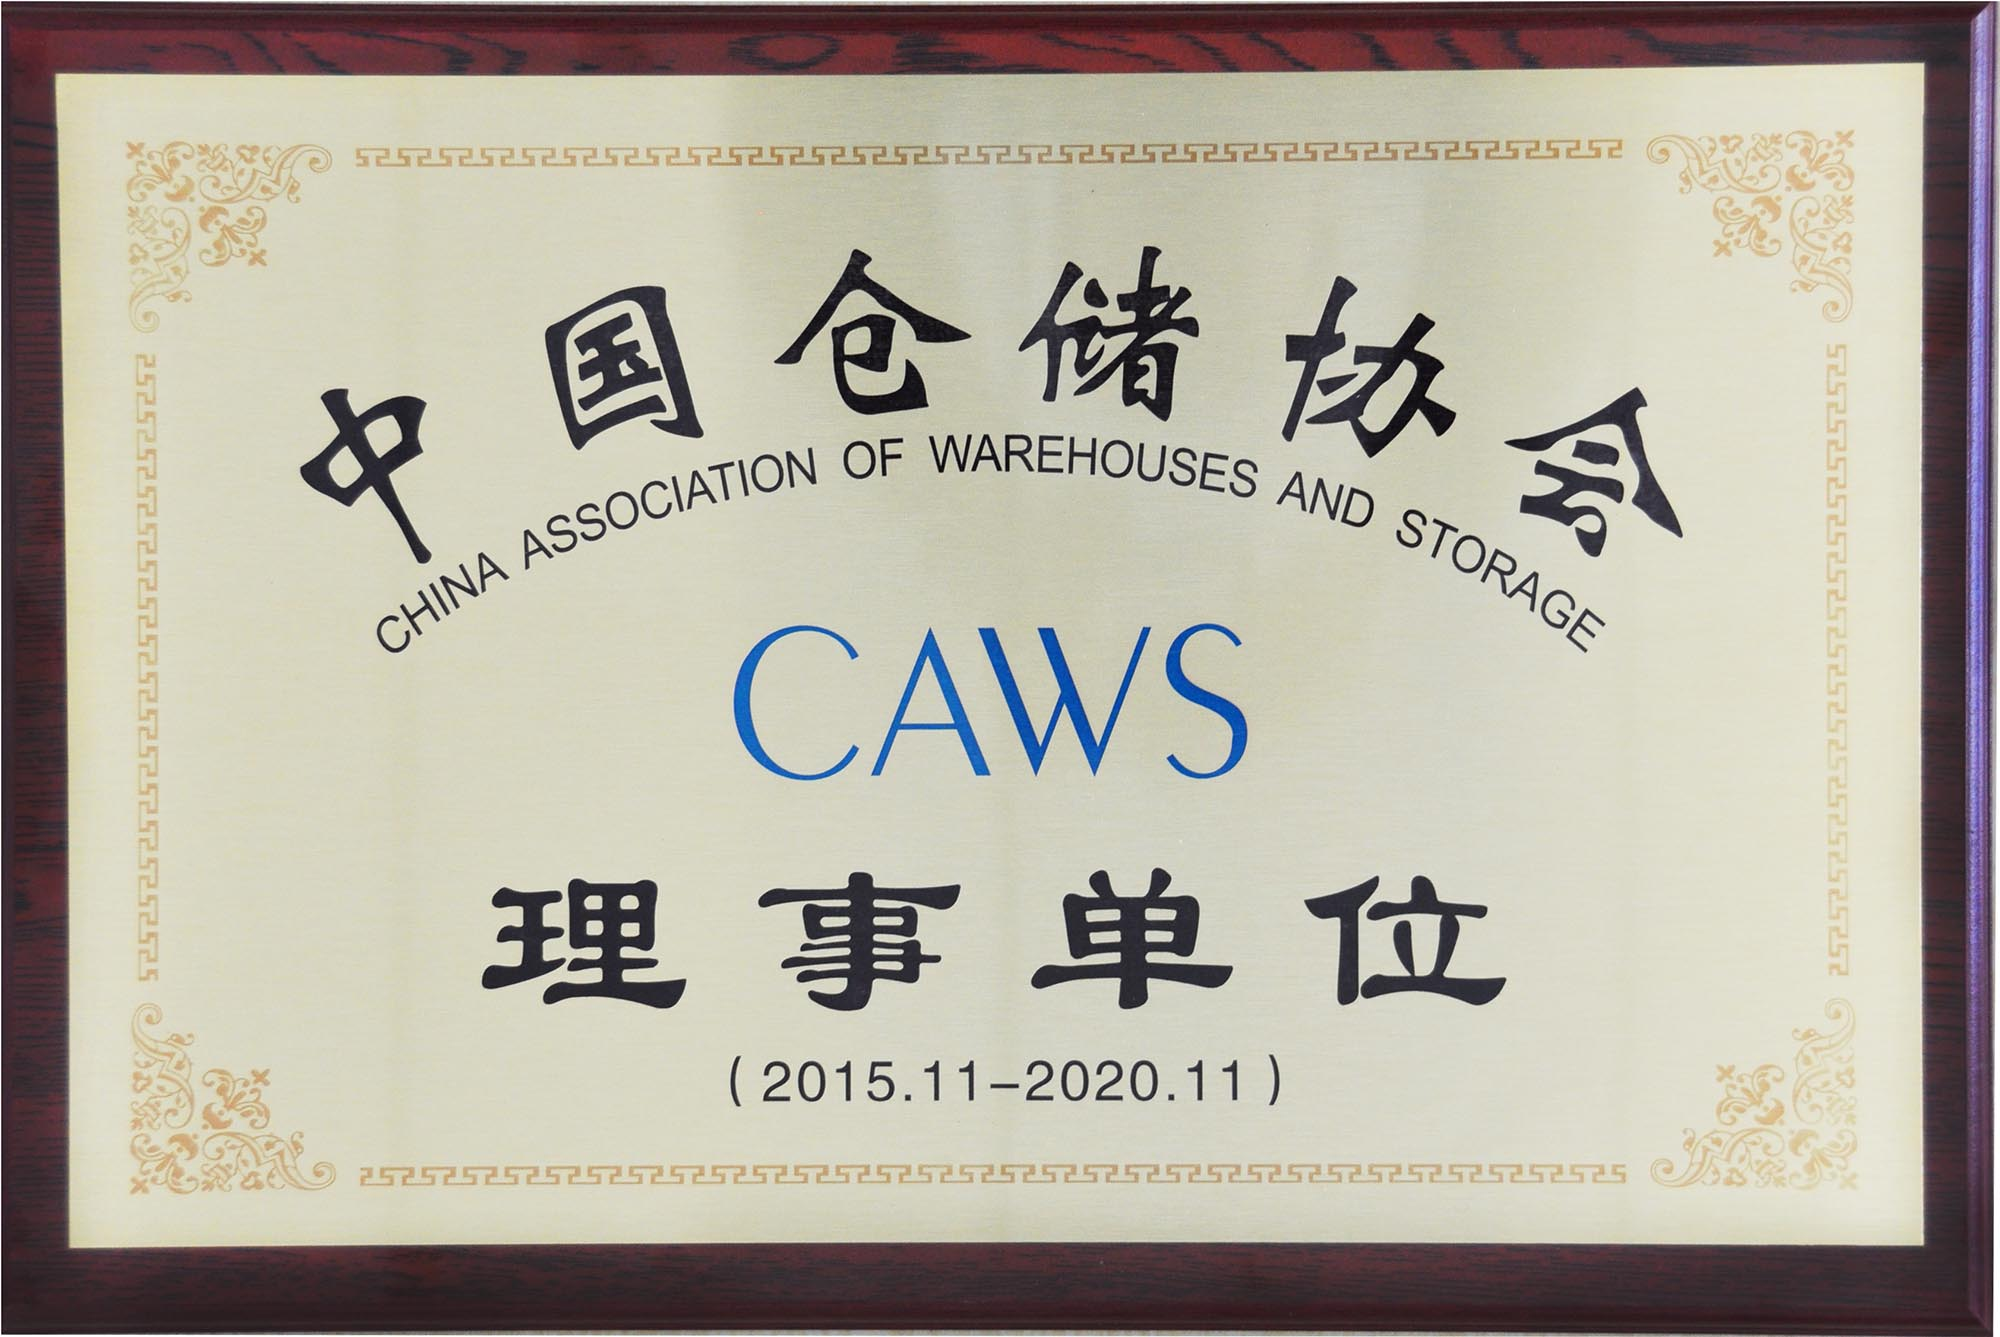 Hebei Woke is appointed with the Council unit of China Storage Association